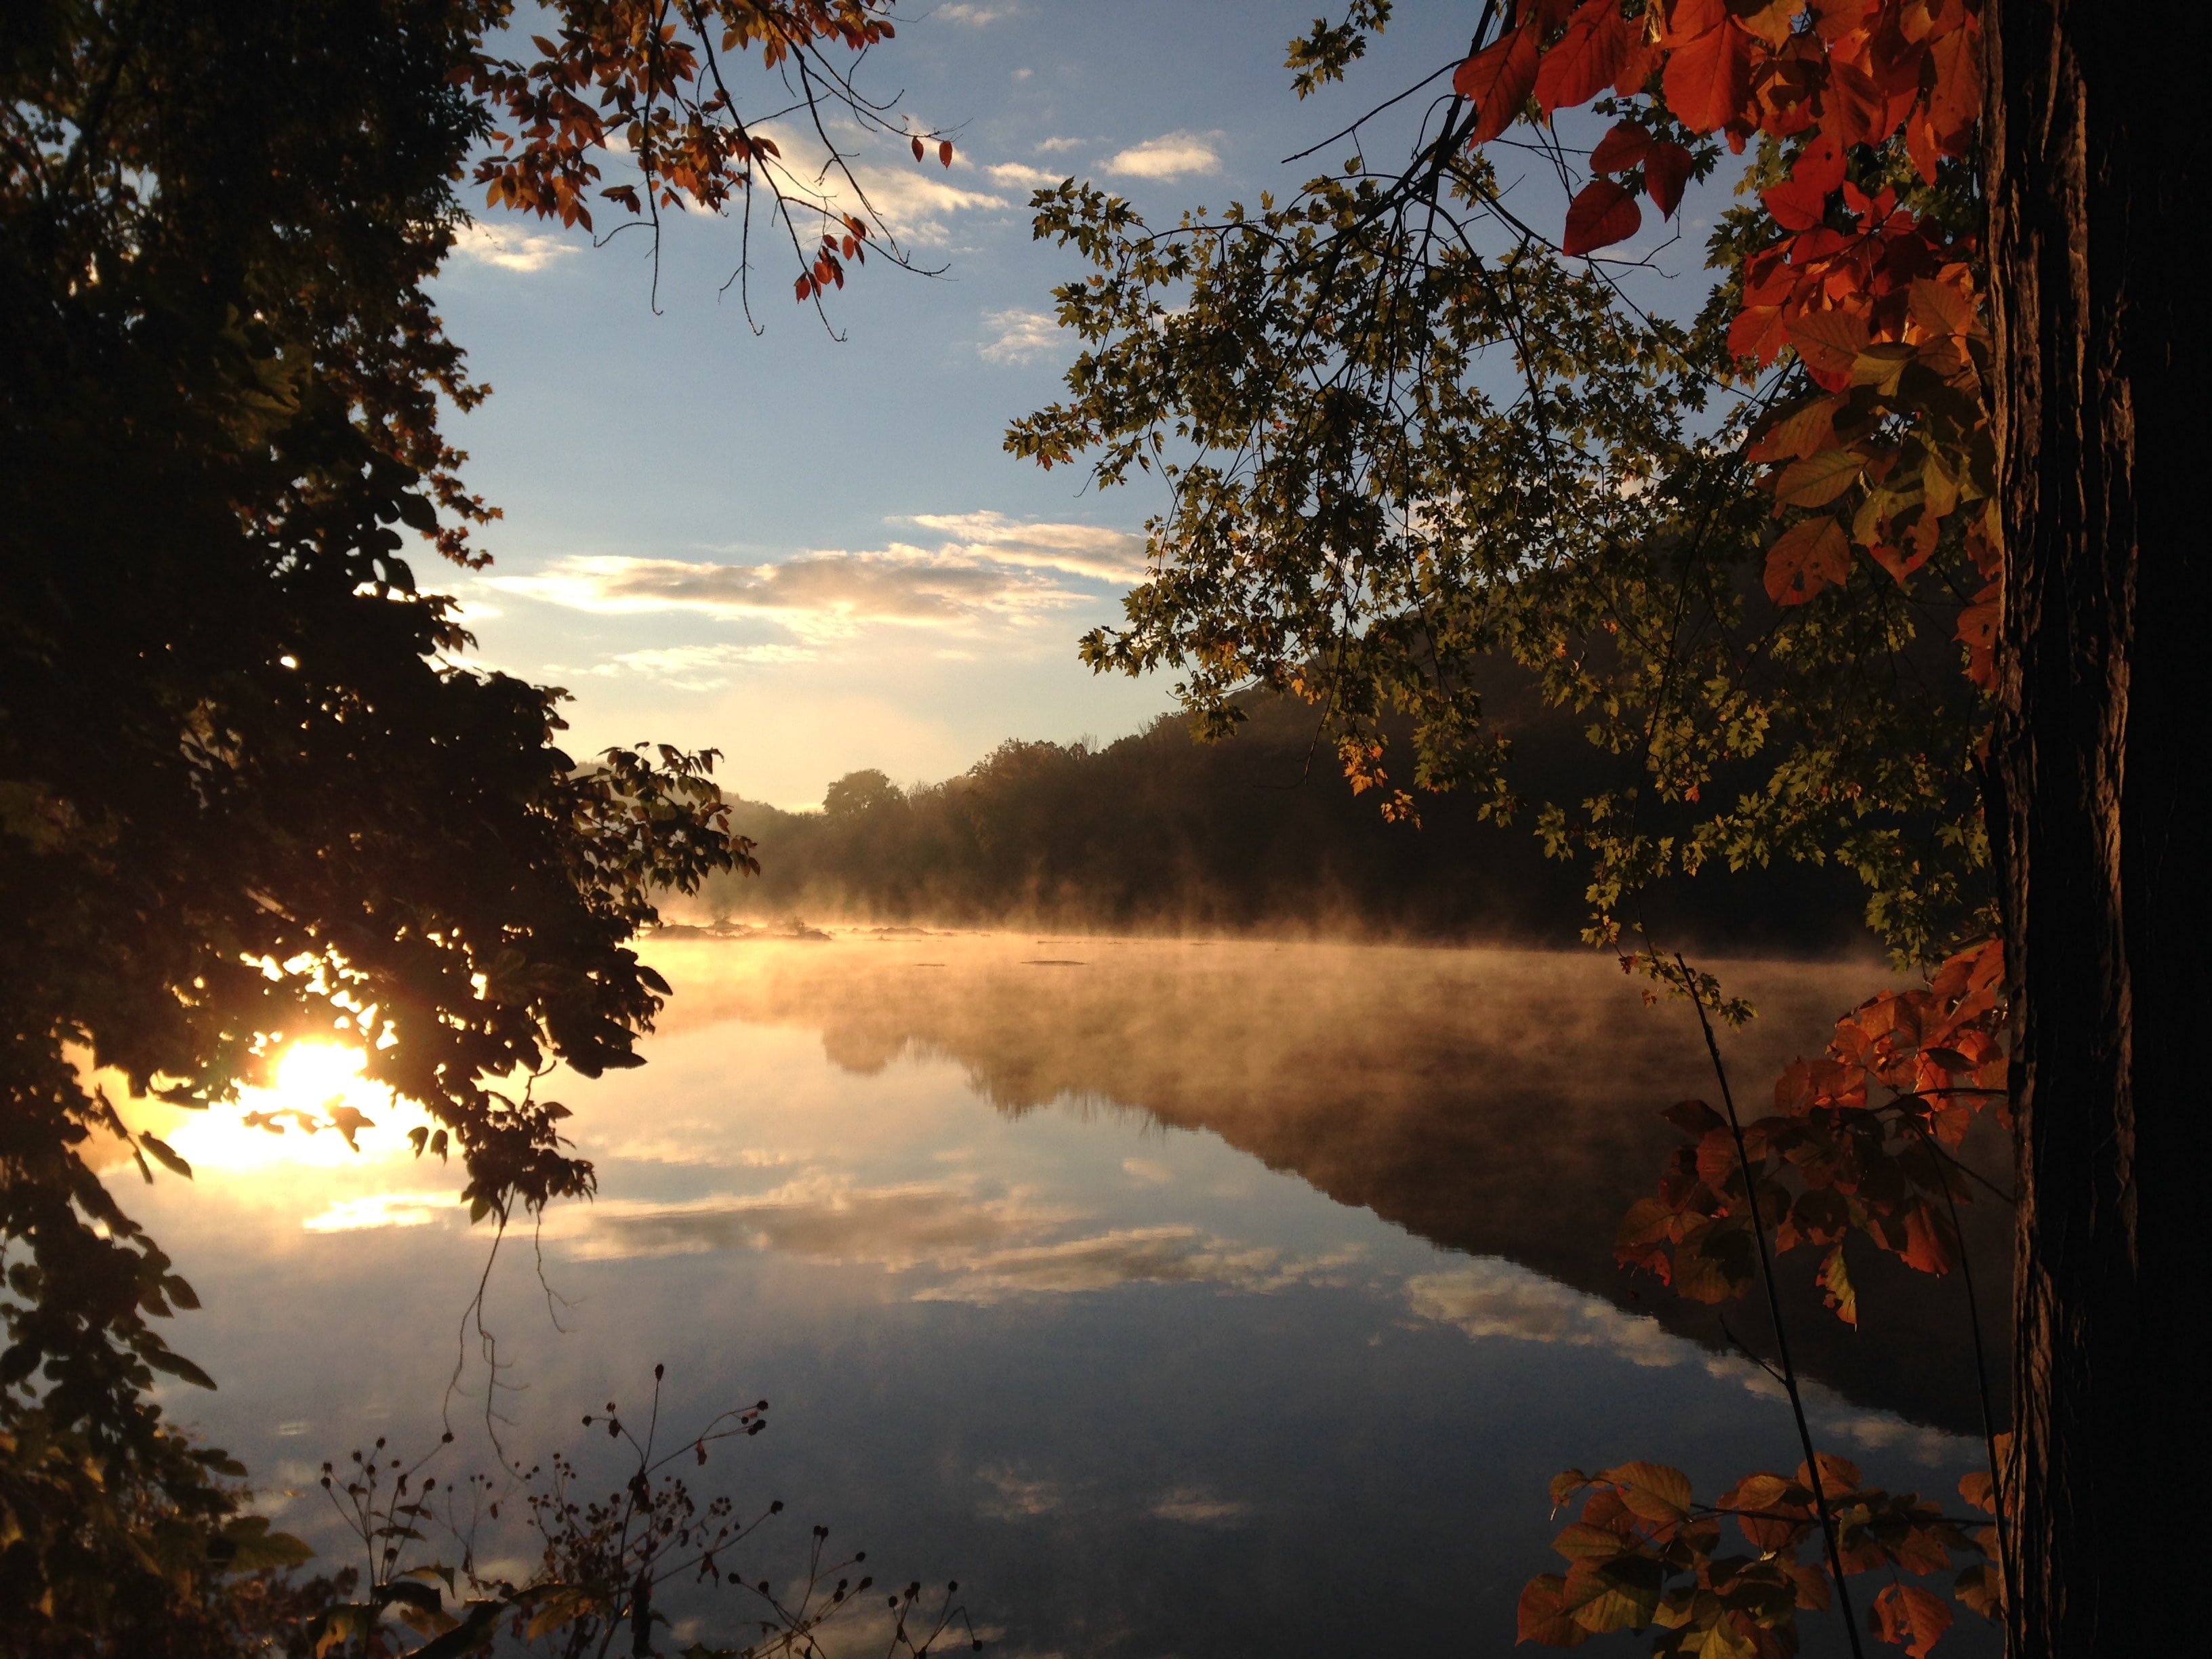 The sky reflecting on a misty lake with orange rays from the sunset in autumn